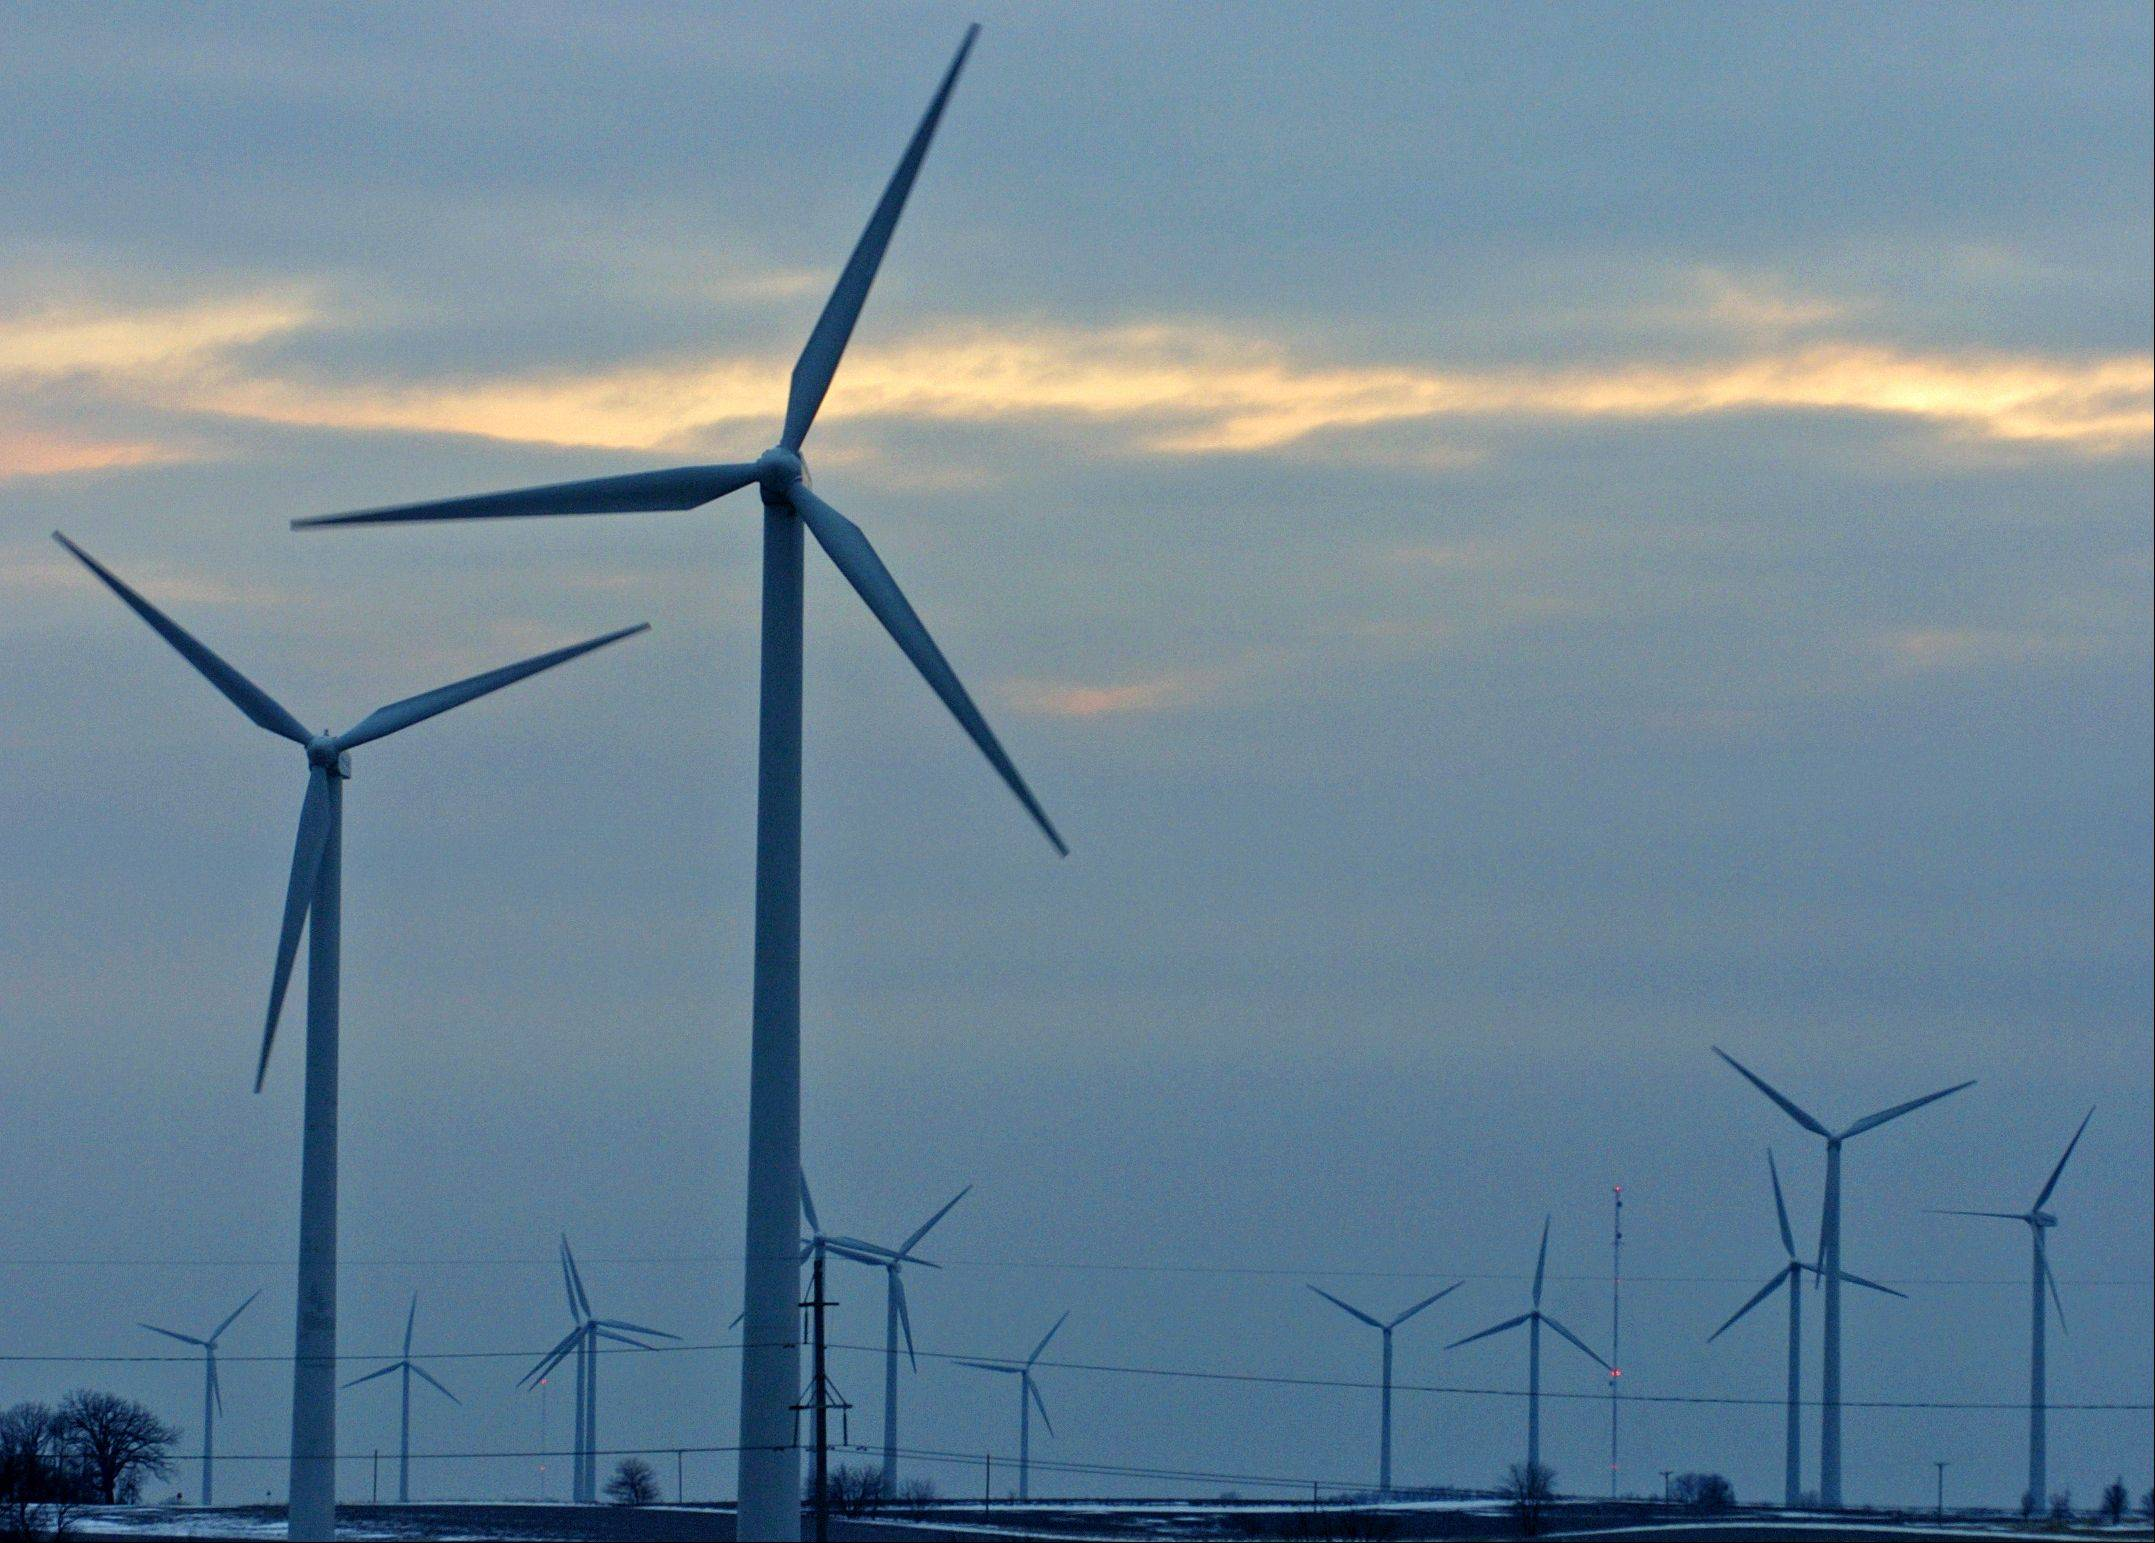 Illinois wind farms now supply 5 percent of the electricity used by Chicago residents and small businesses who participate in a new aggregation program, Mayor Rahm Emanuel's office said Tuesday, lauding what environmentalists say could serve as a model for other communities.